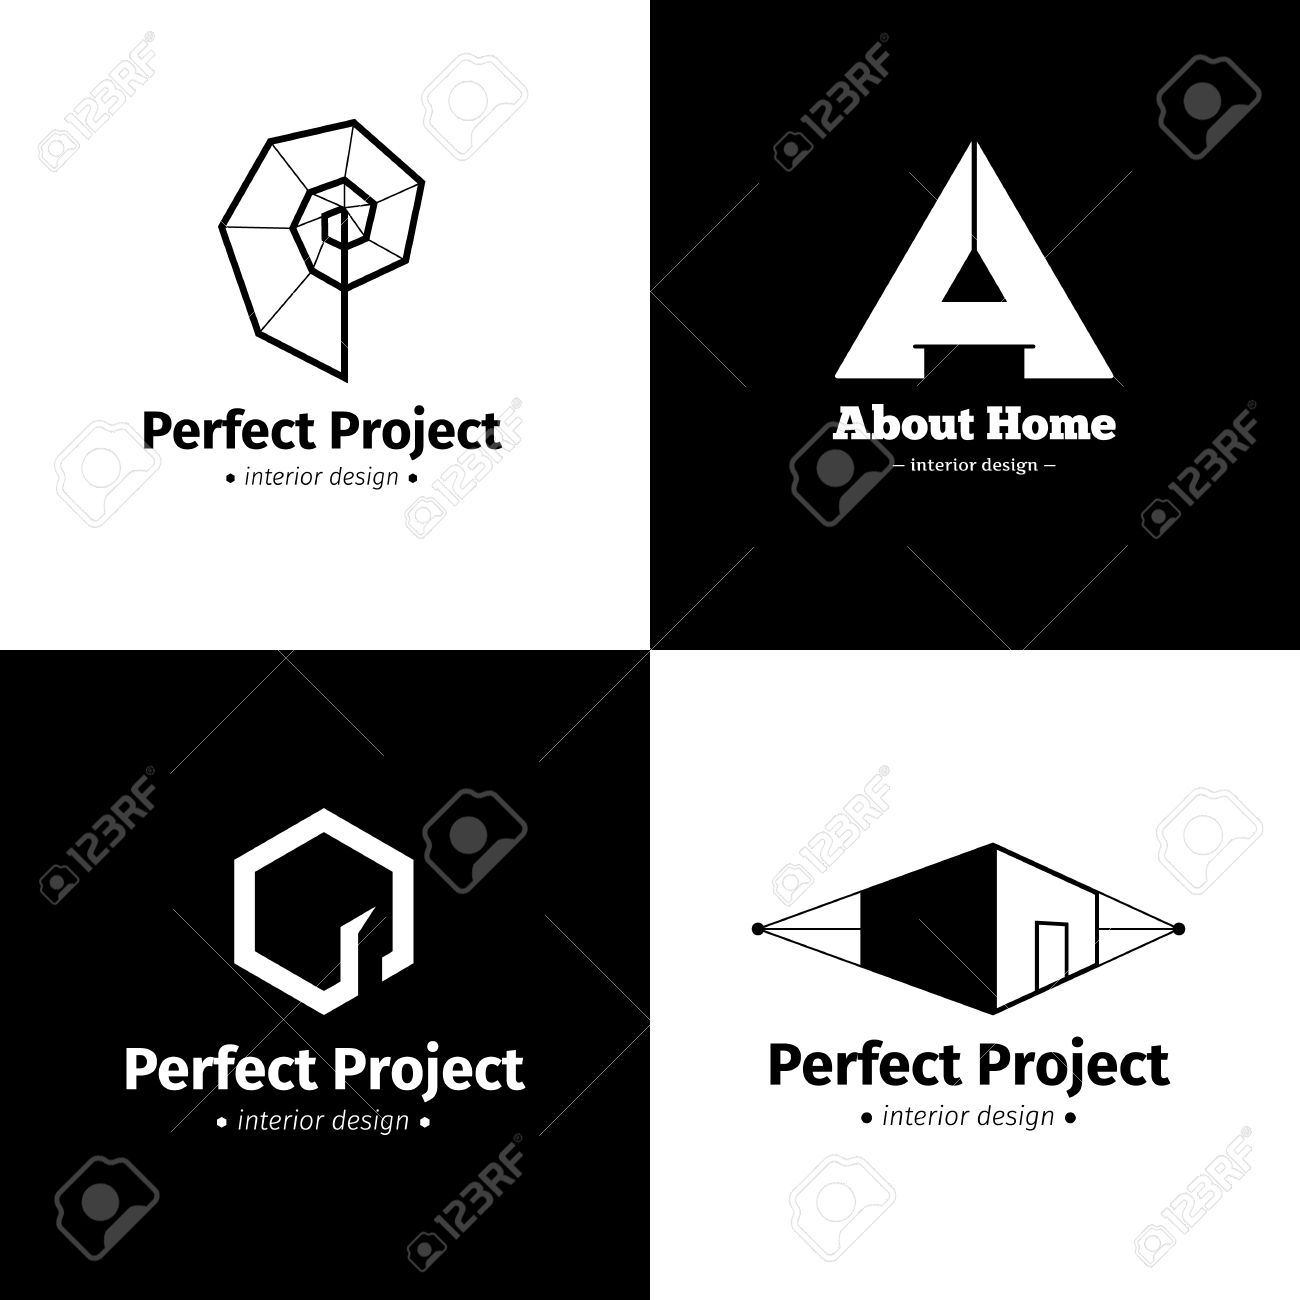 Vector Set Of Four Minimalistic Interior Design Studio Logos Royalty Free Cliparts Vectors And Stock Illustration Image 51350836